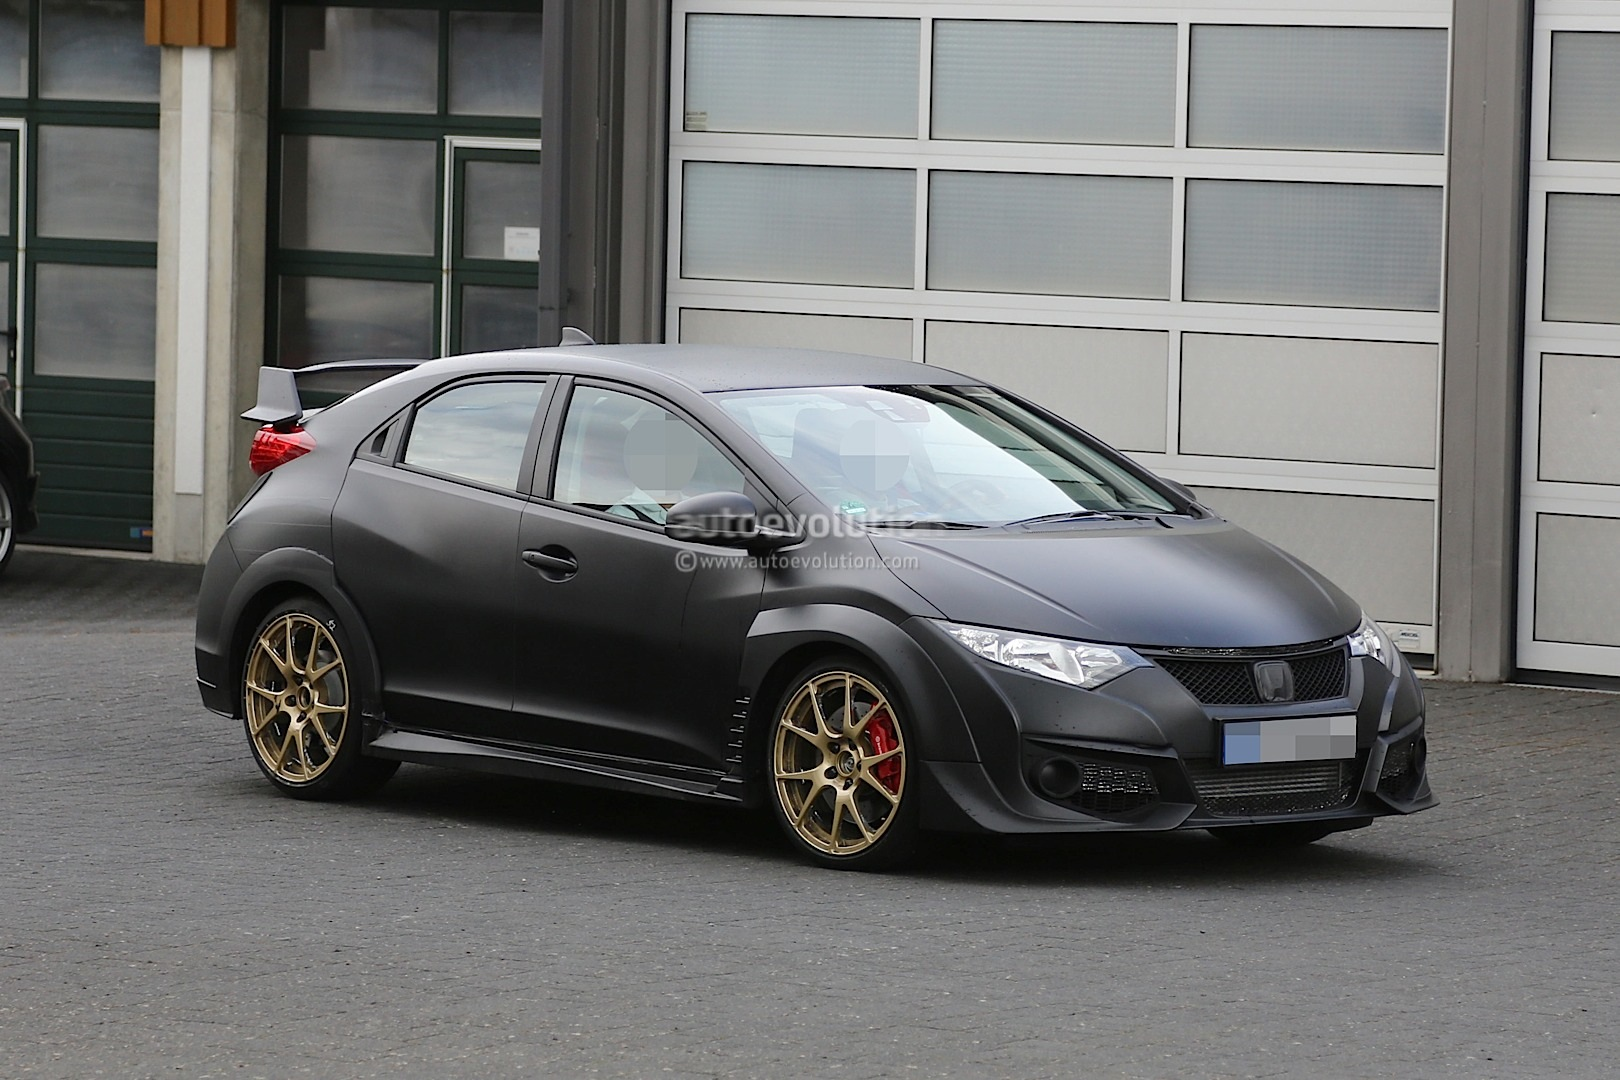 New Honda Civic Type R Spied Testing Against Mercedes A45